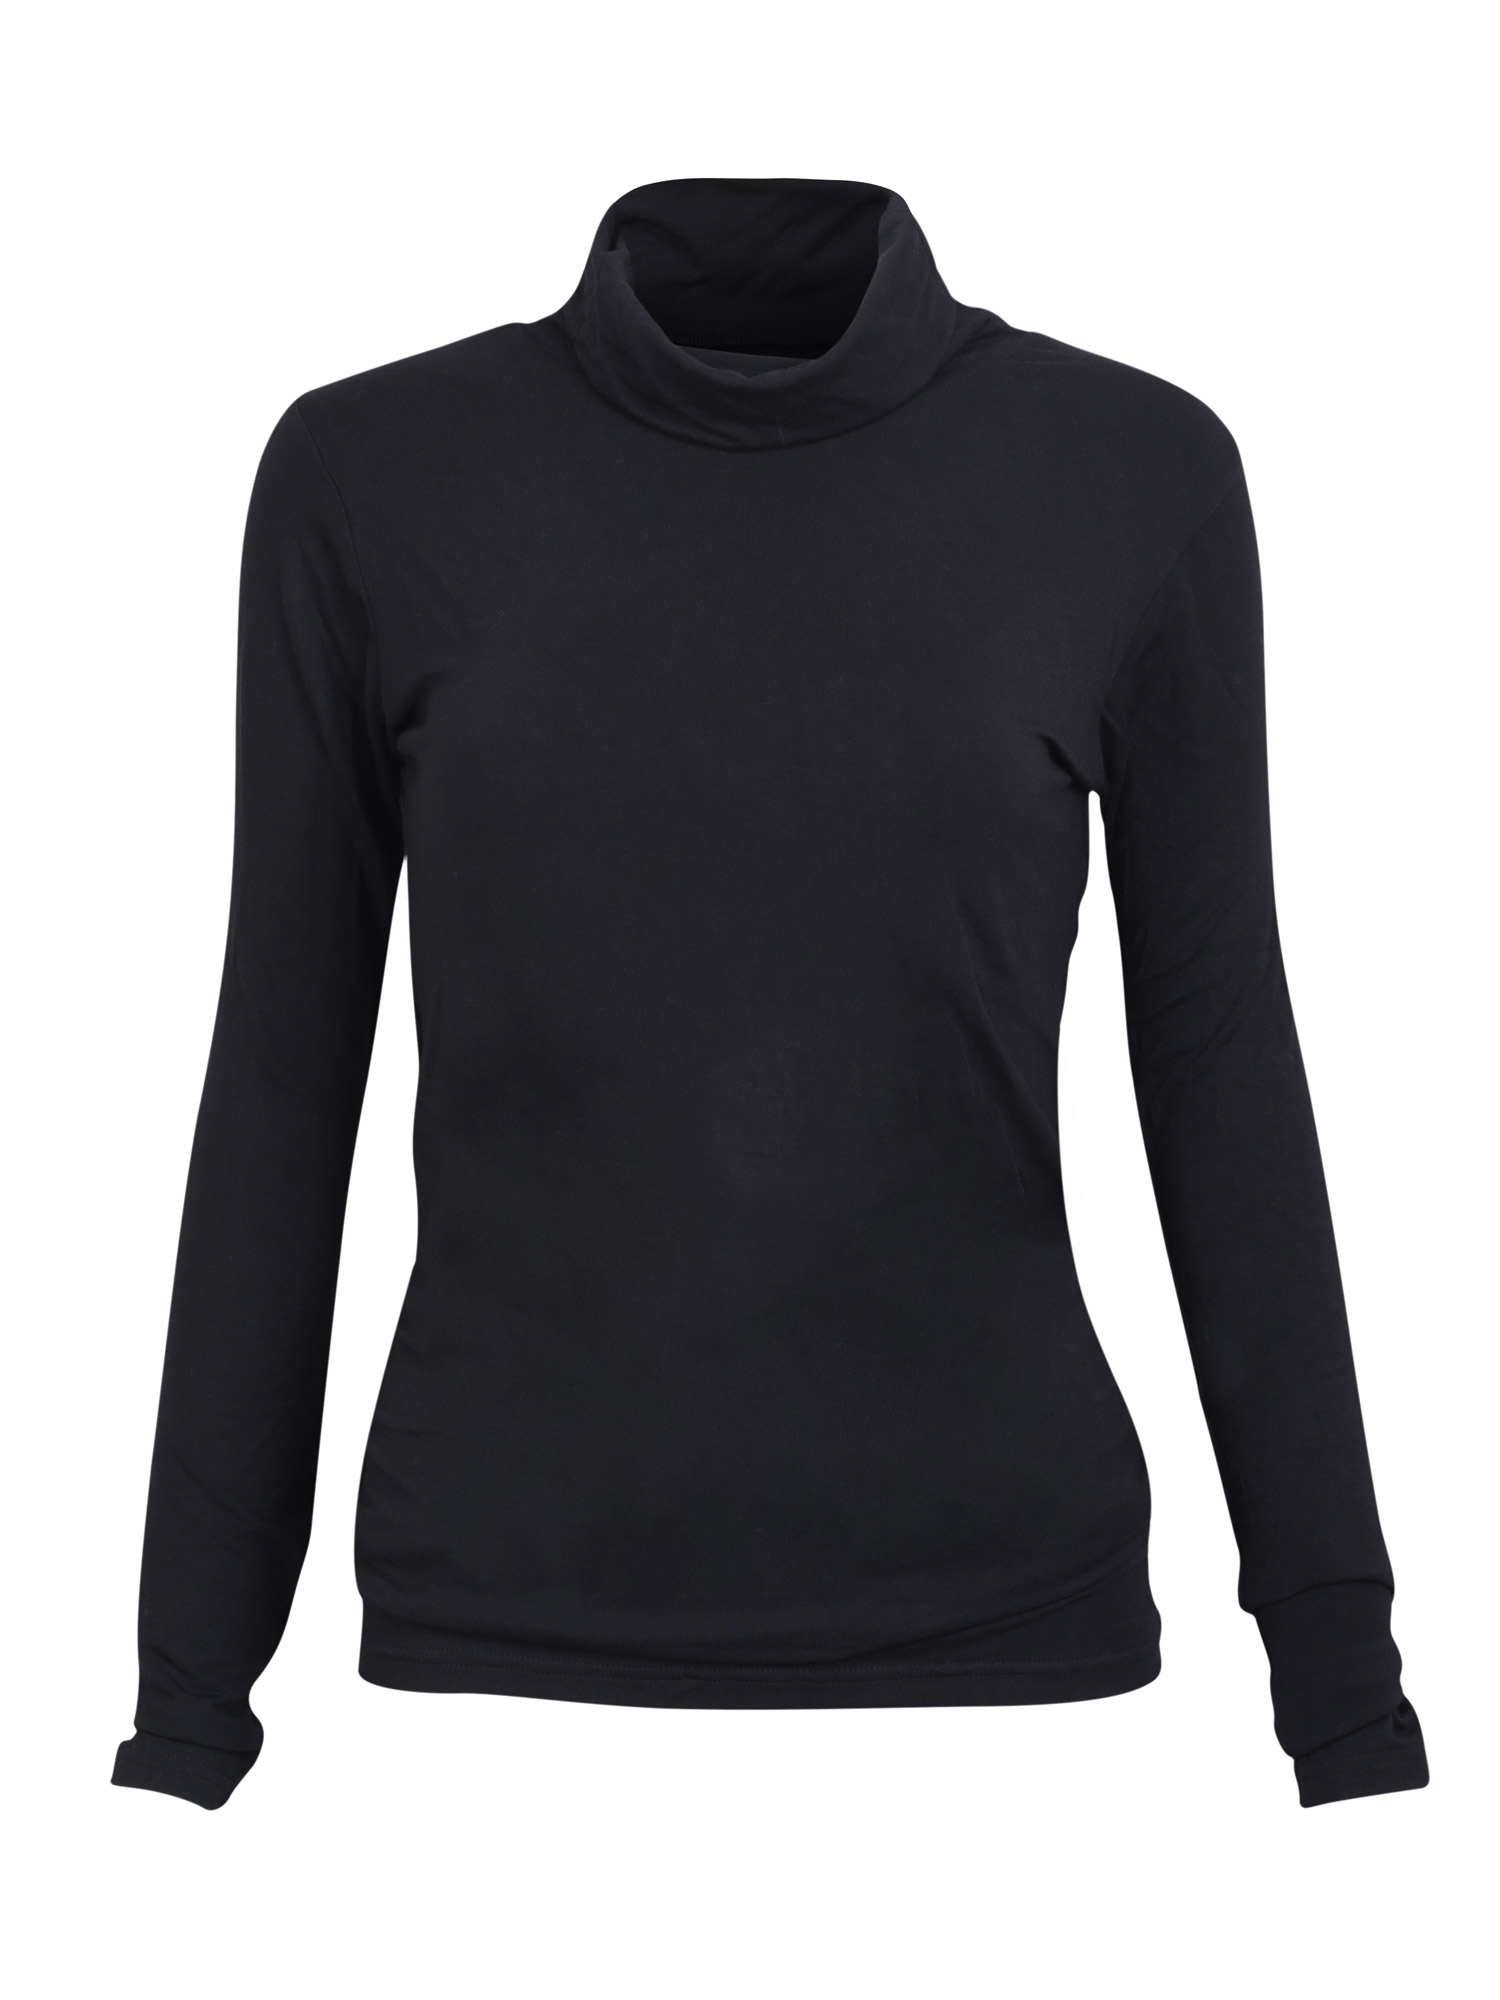 x24_high-neck_black_front